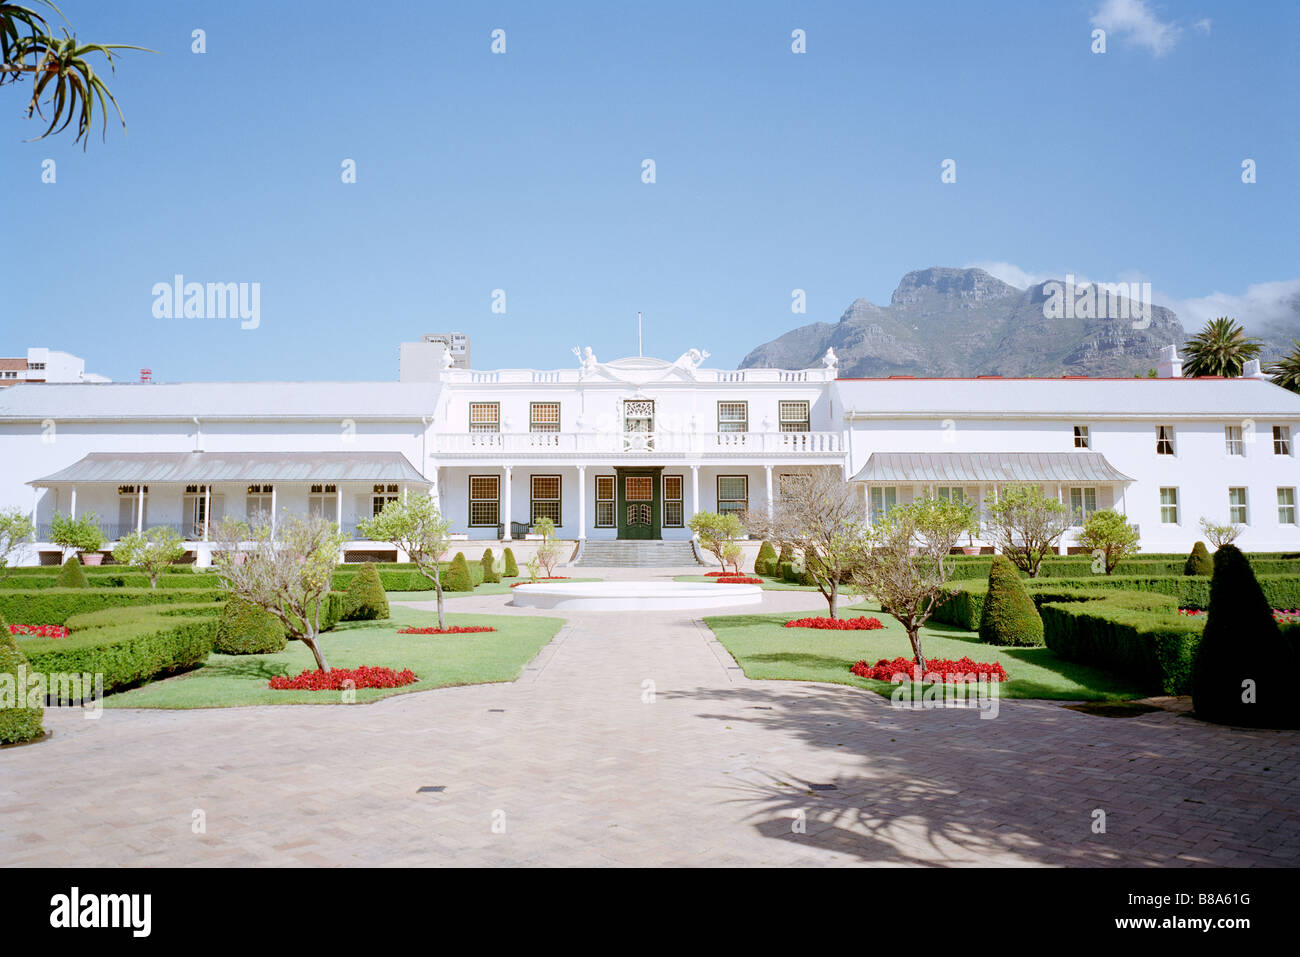 President House Tuynhuys Garden House in Company's Garden in Cape Town in South Africa in Sub Saharan Africa. - Stock Image